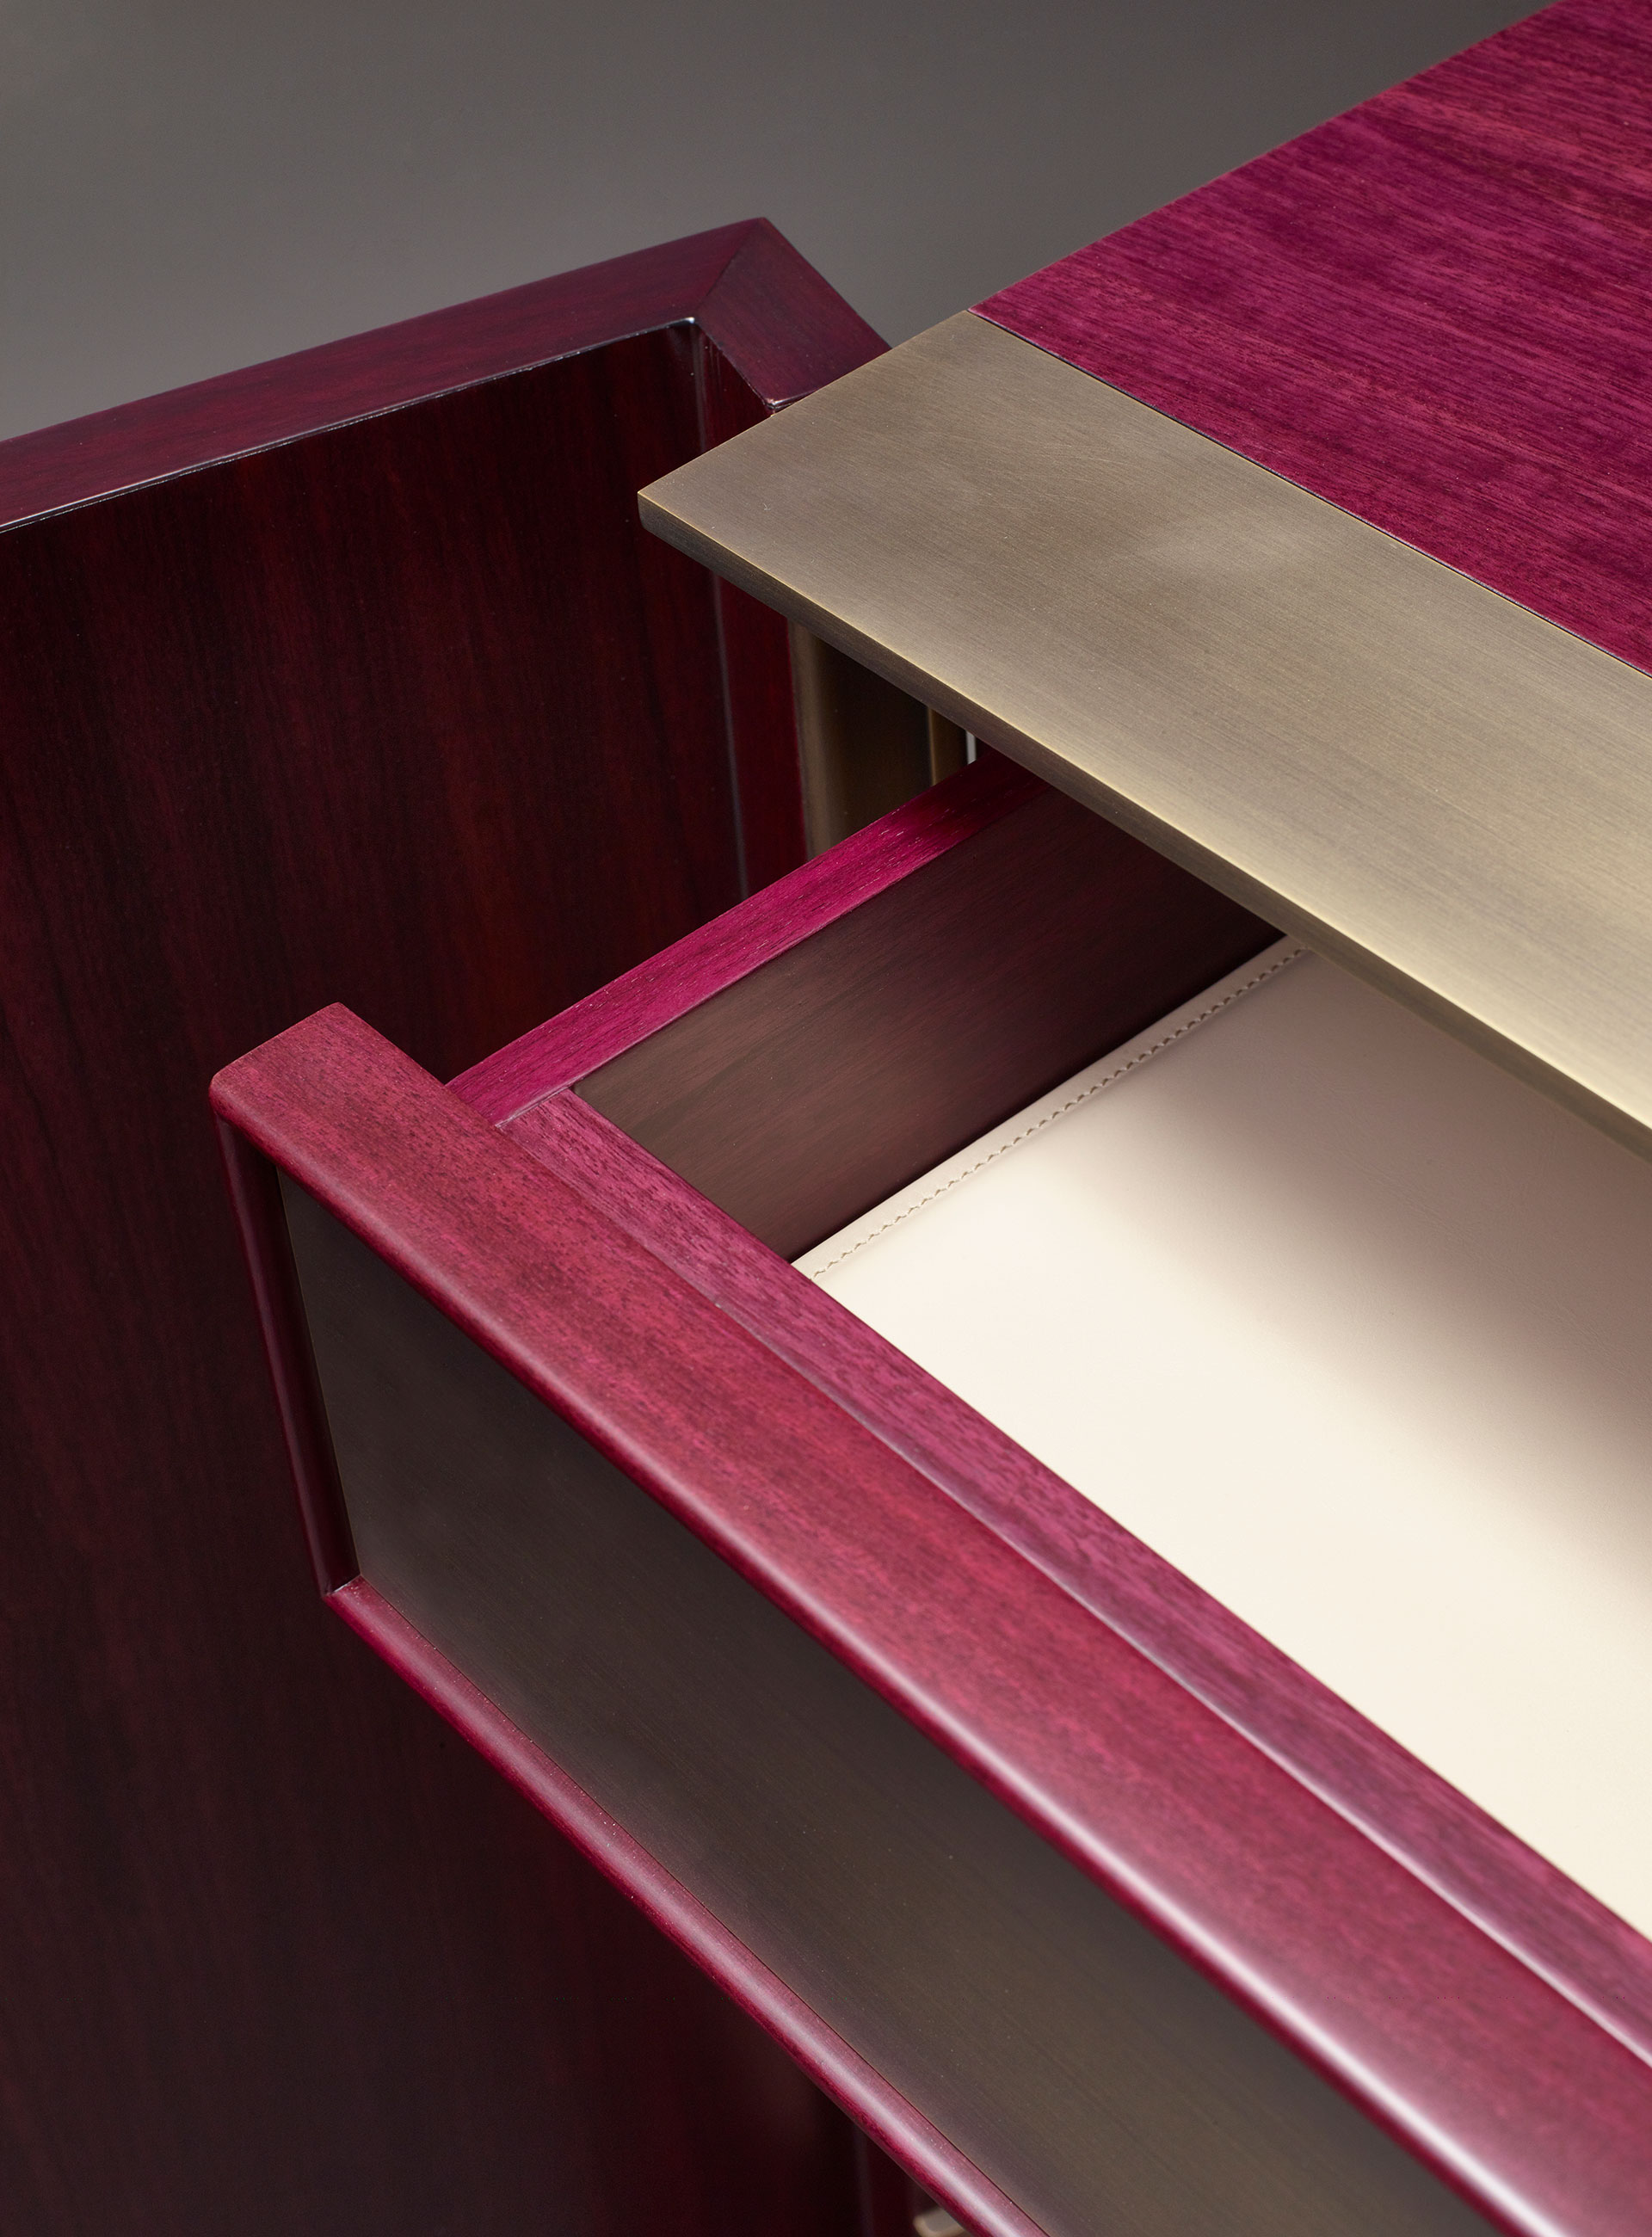 Drawers' detail of La Belle Aurore, a wooden cabnet with bronze details, from Promemoria's catalogue | Promemoria